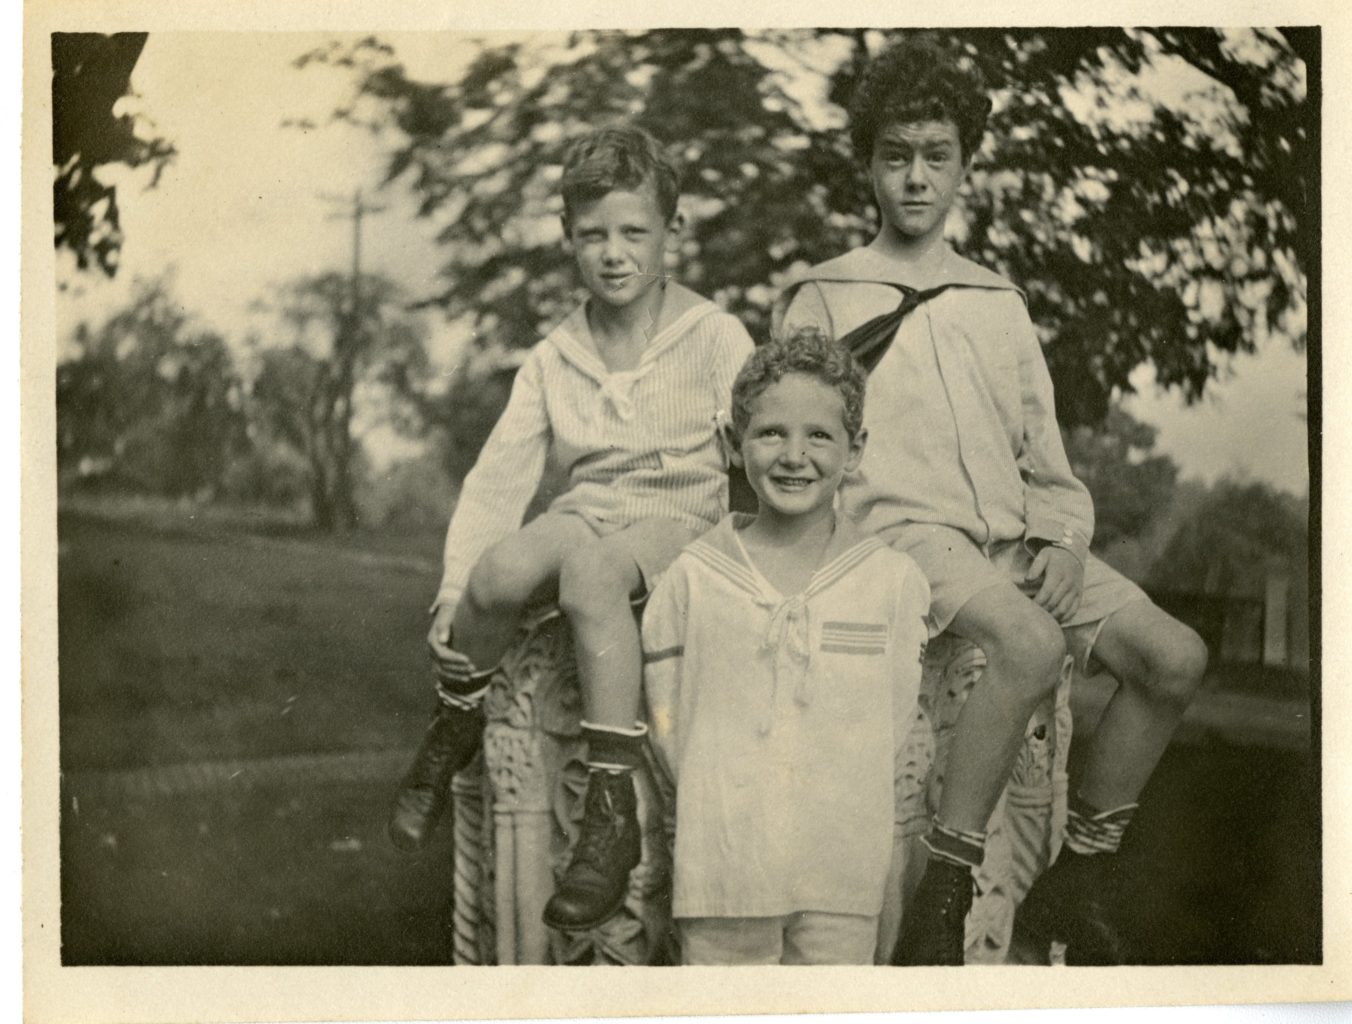 Three boys pose for a photo, two sitting and one standing. All in white.